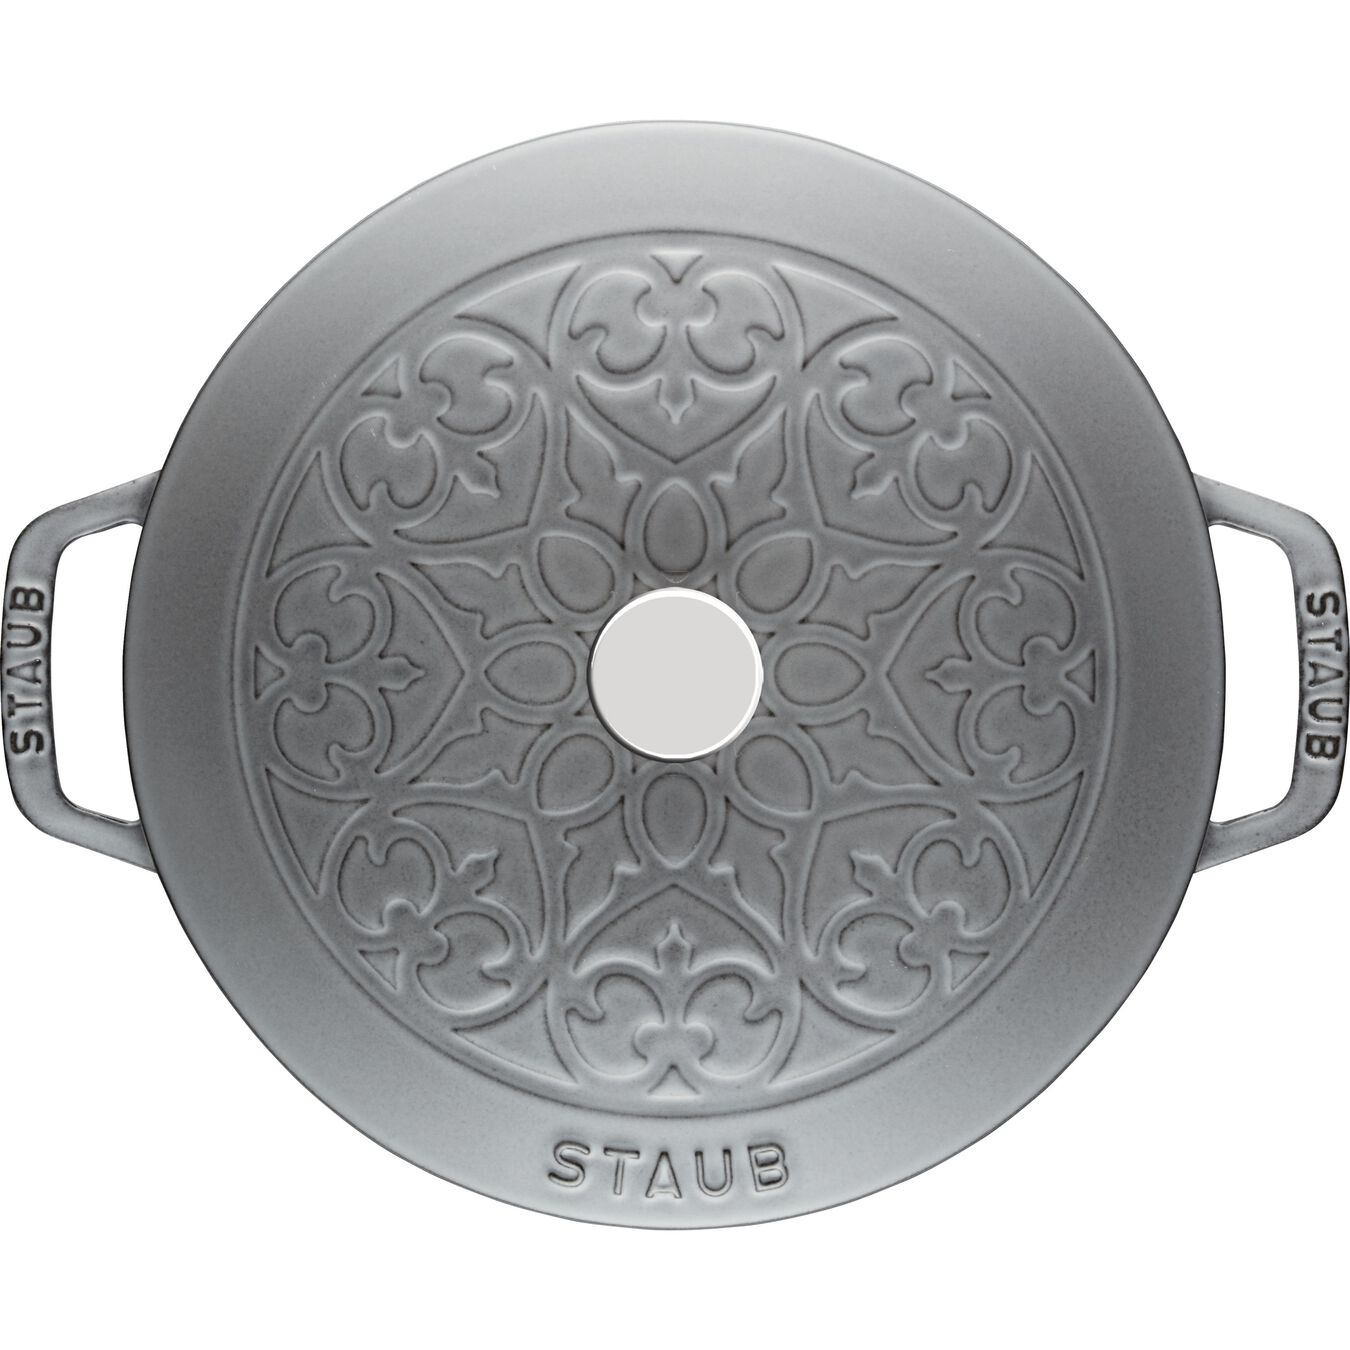 5 l Cast iron round French oven, graphite-grey - Visual Imperfections,,large 2